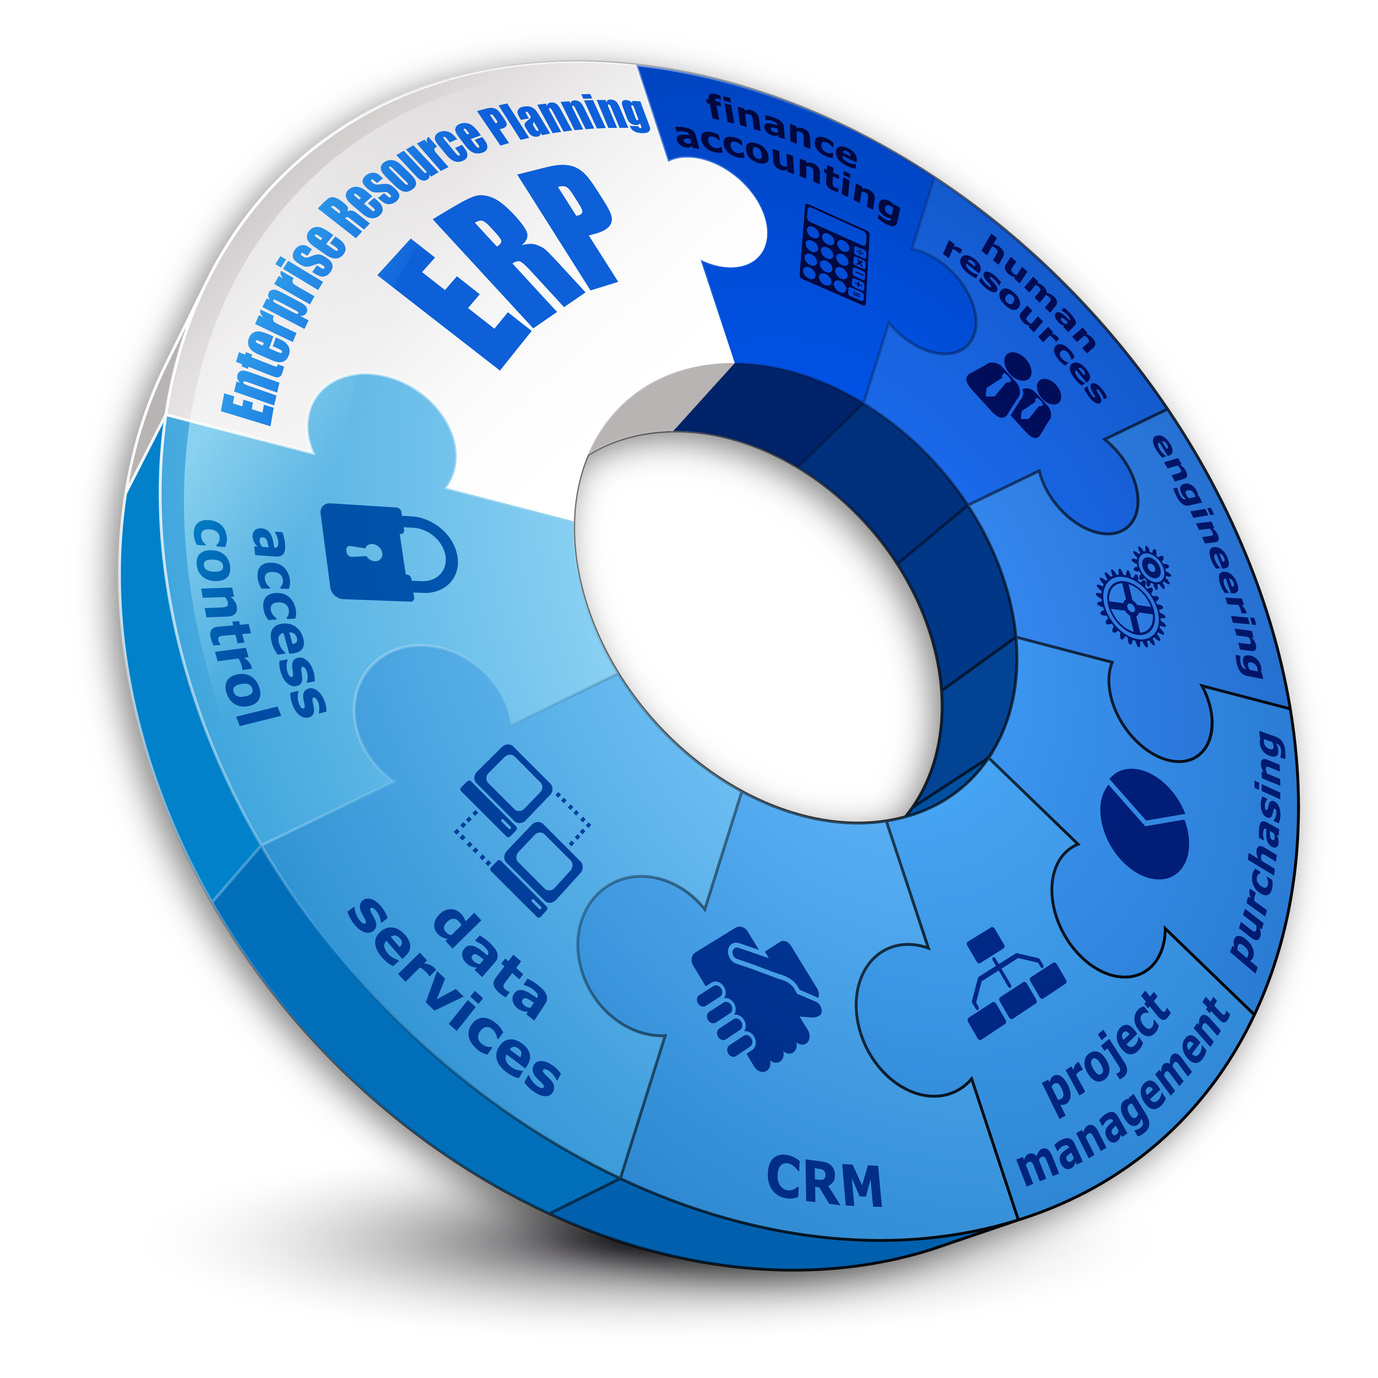 5 Reasons to Upgrade Your ERP Solution